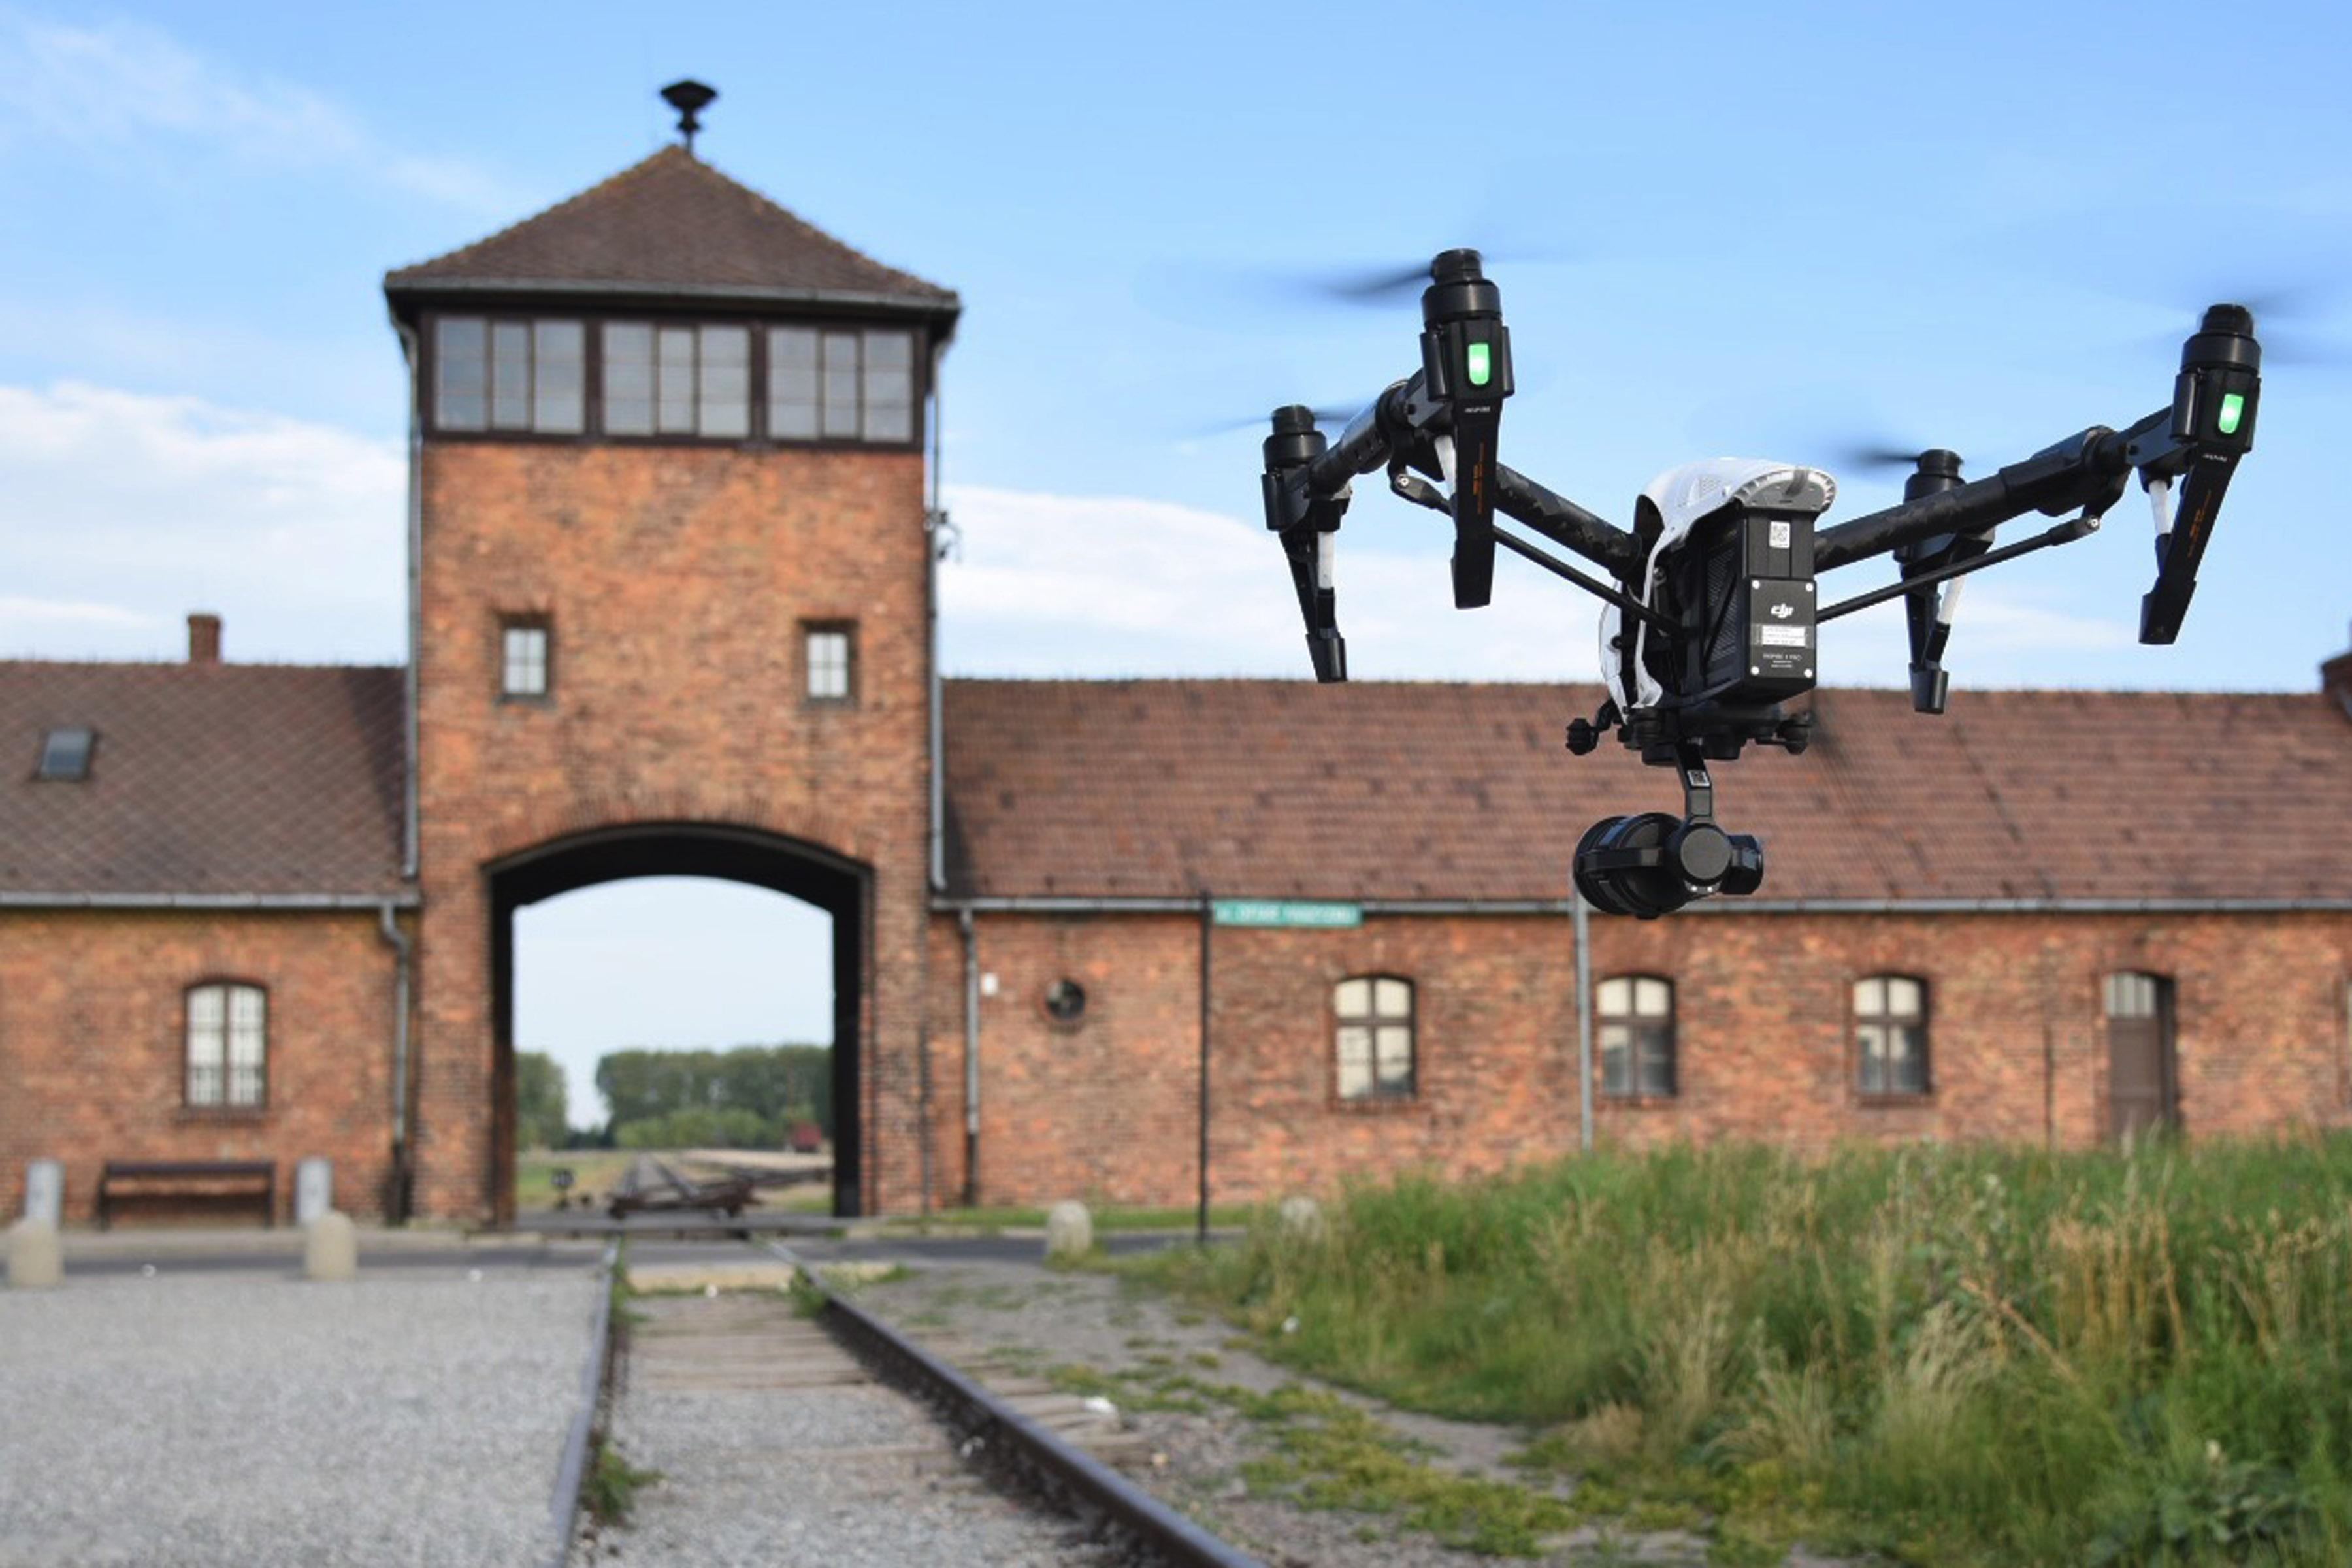 Drone flying towards the entrance of Auschwitz.